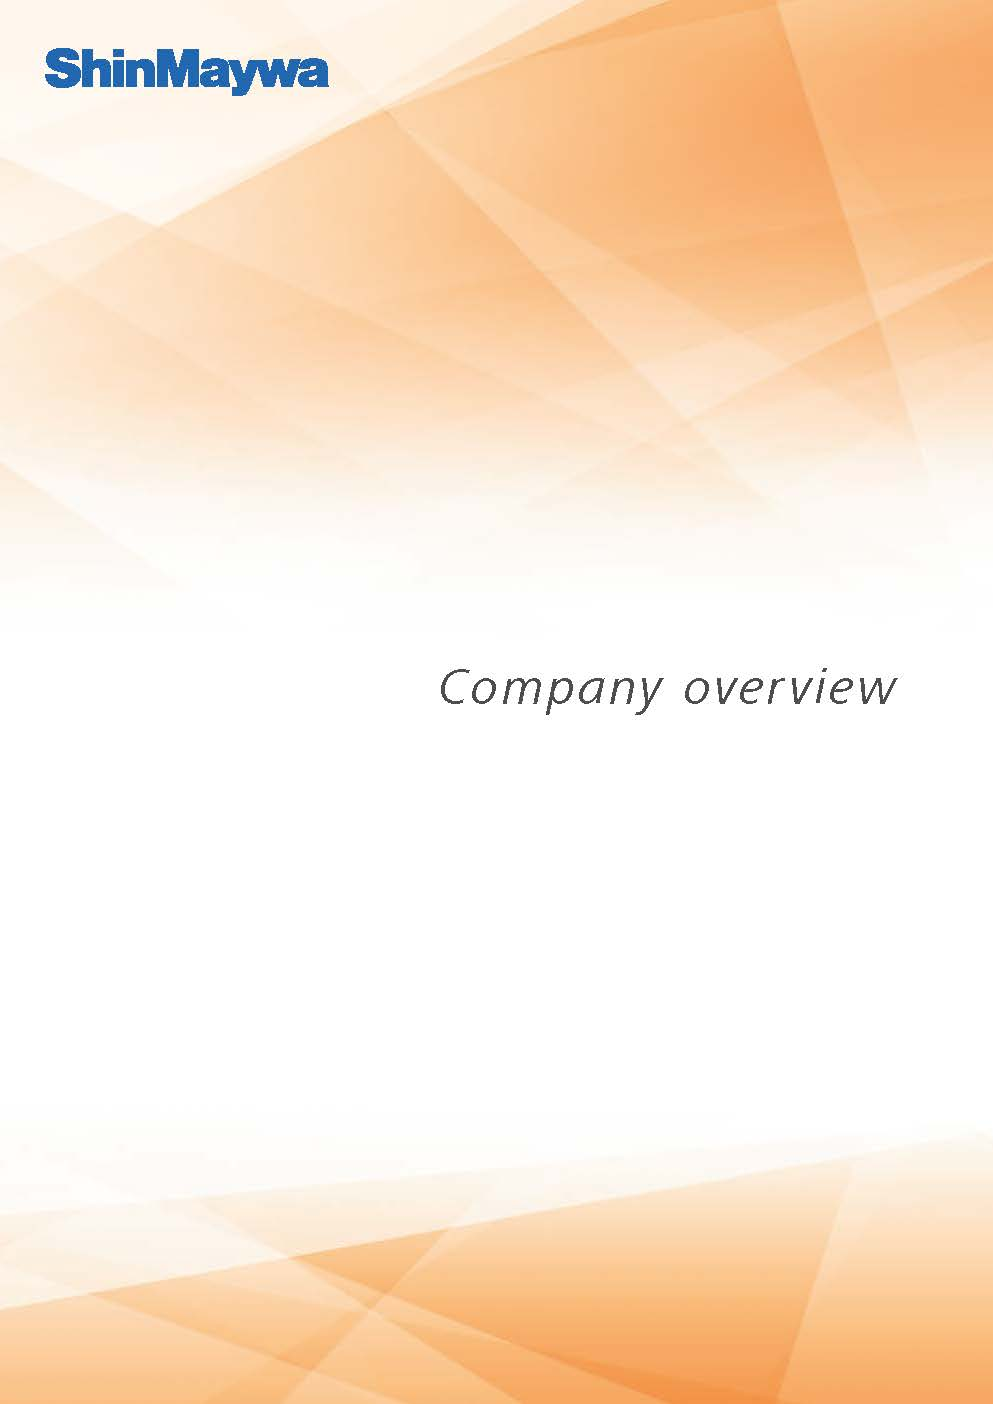 Company overview(English)